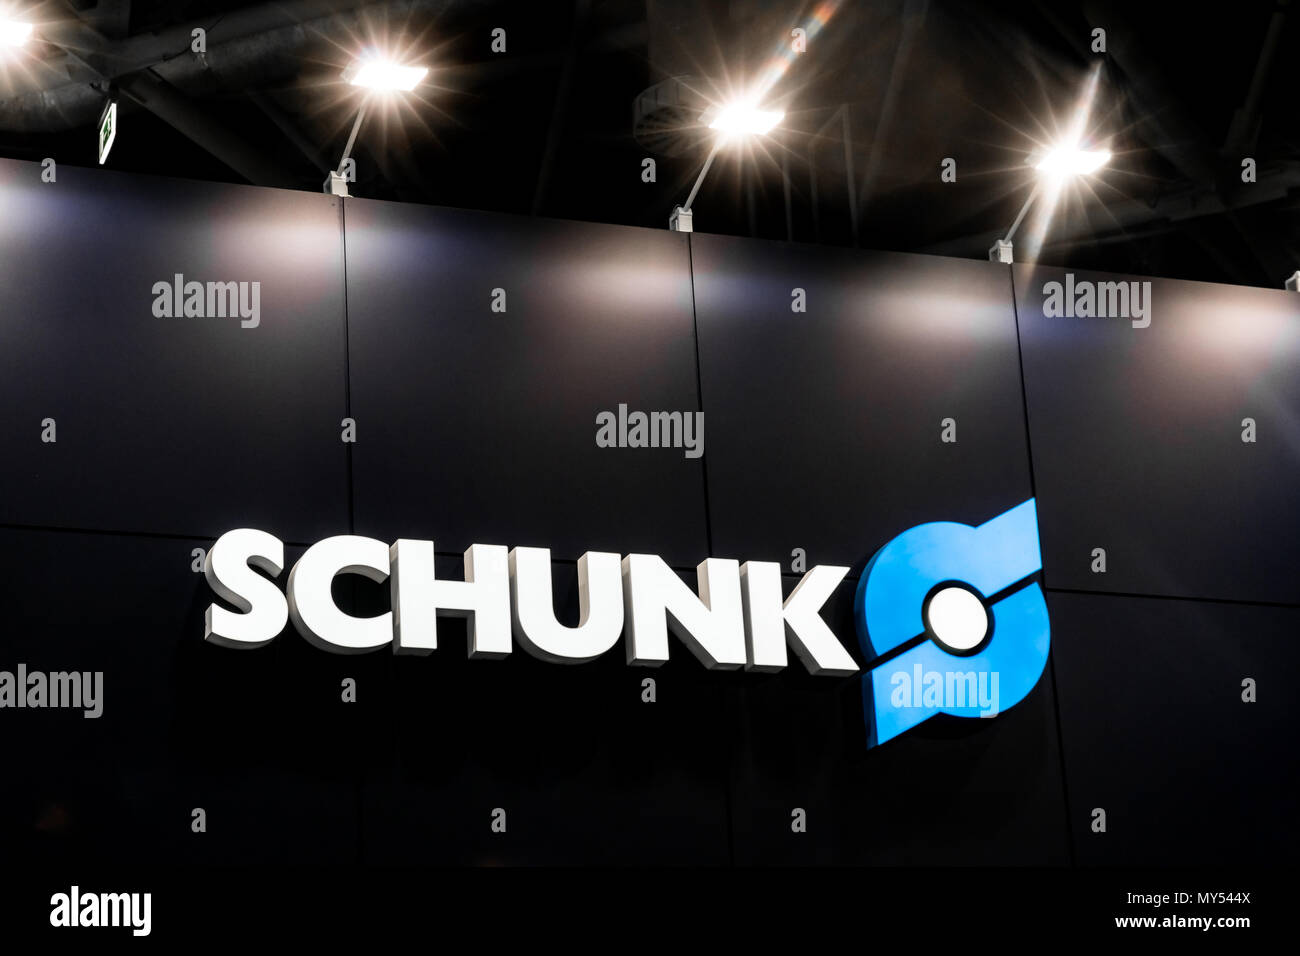 Schunk logo sign on the wall - Stock Image